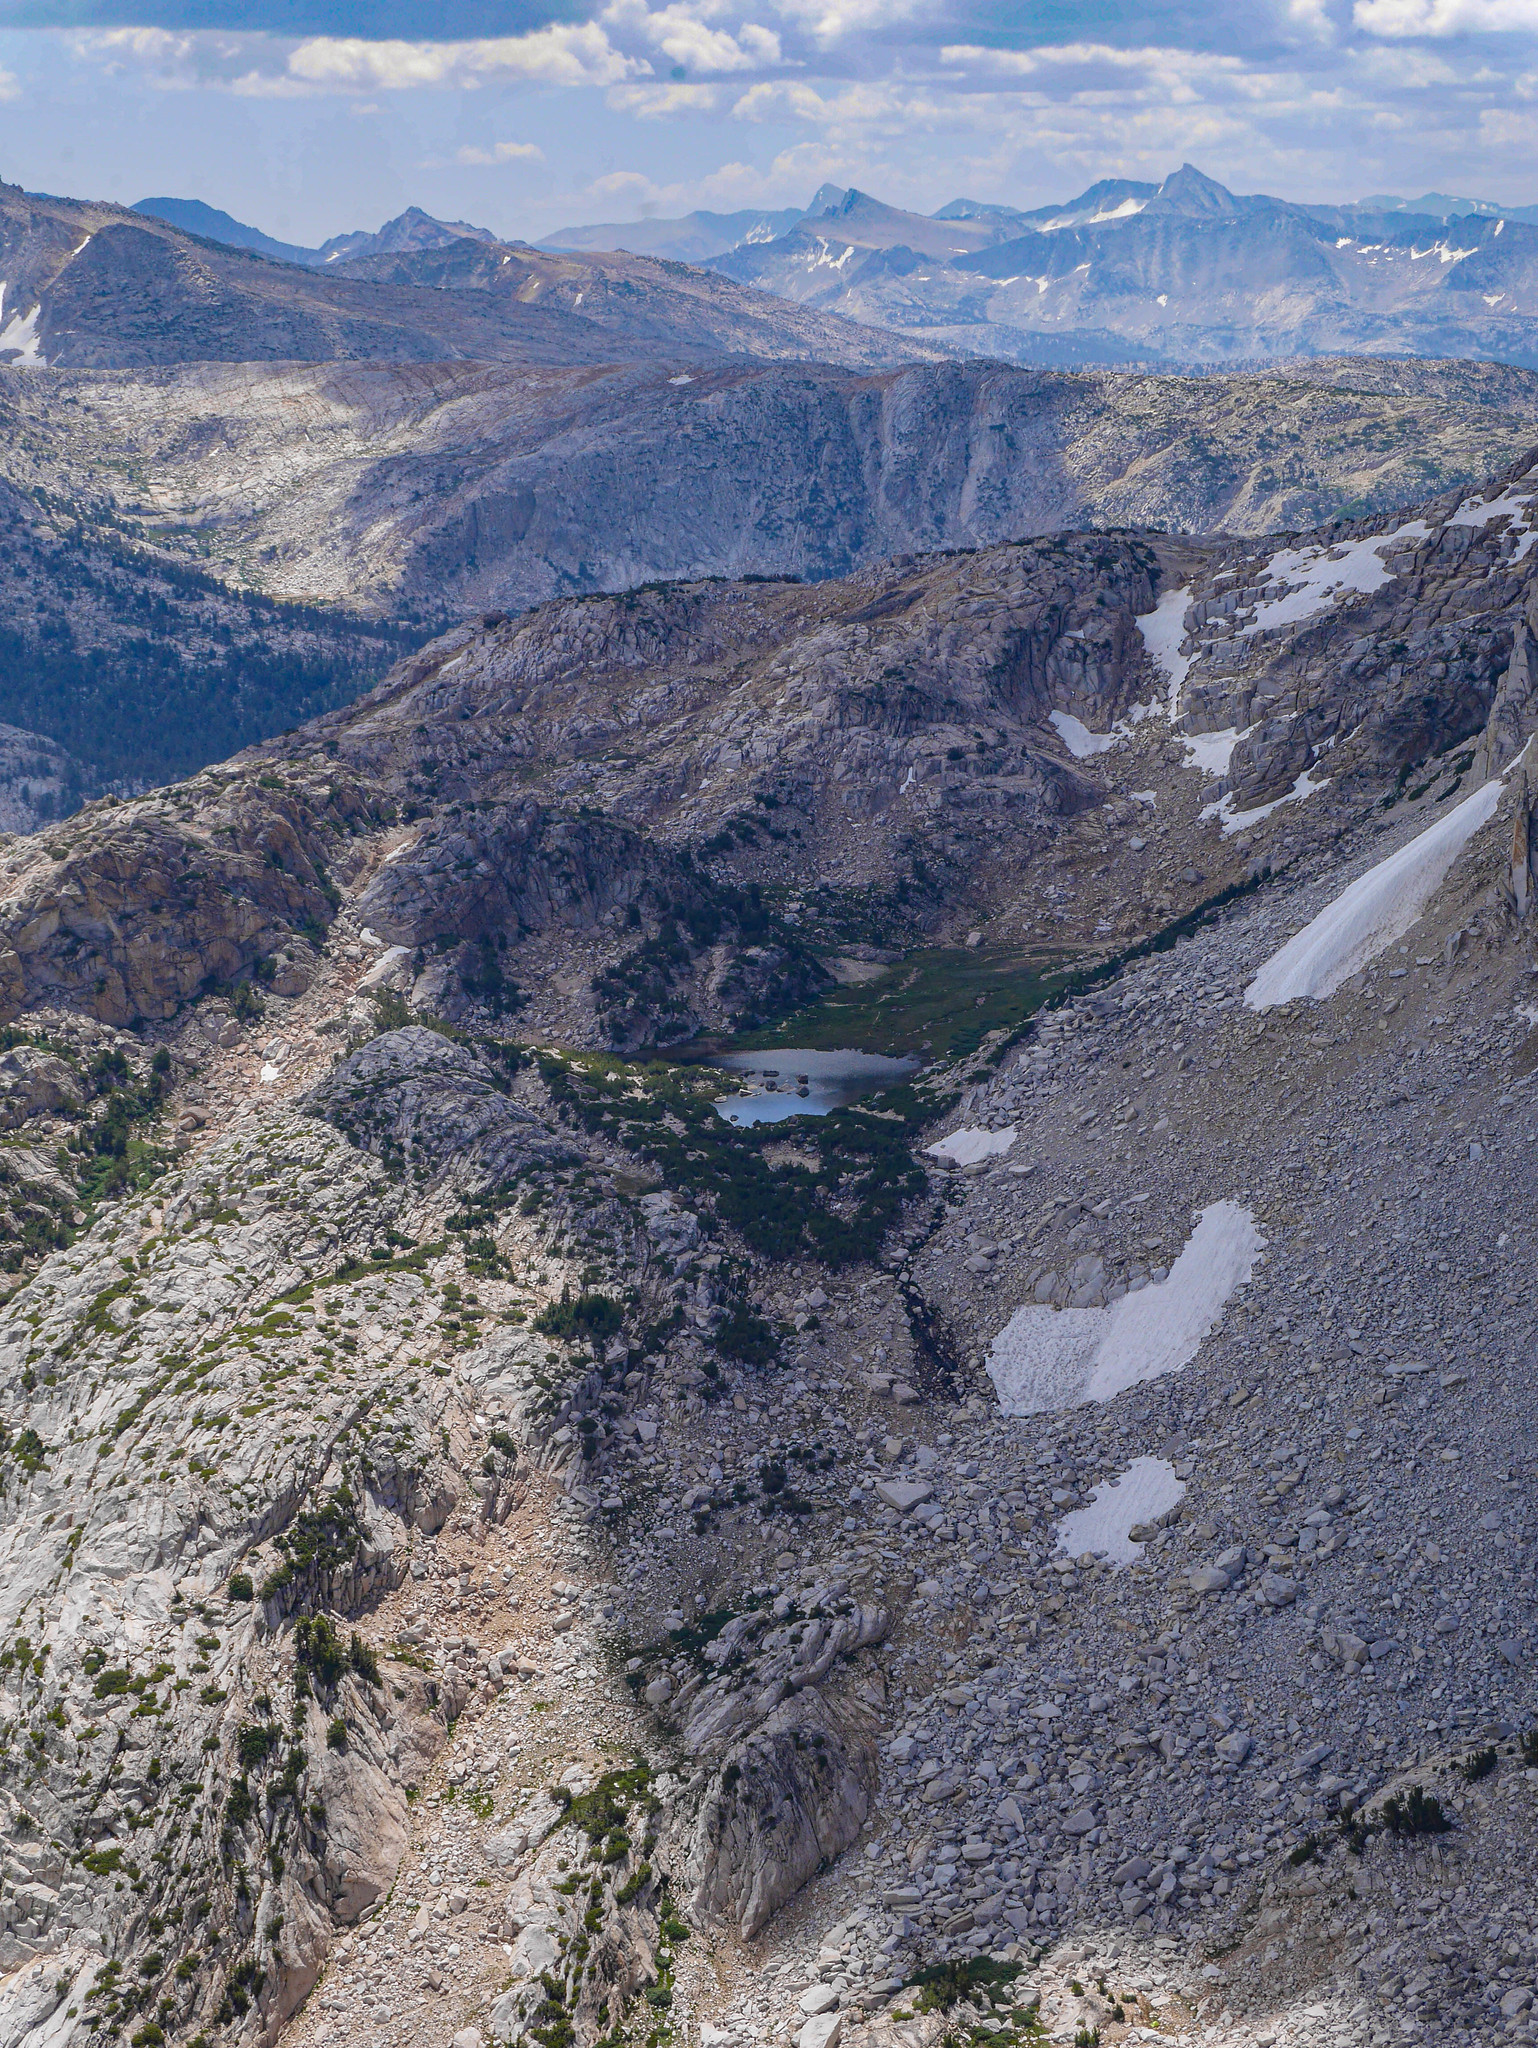 Mule Pass, Burro Pass, Yosemite high country as seen from Crown Point Peak